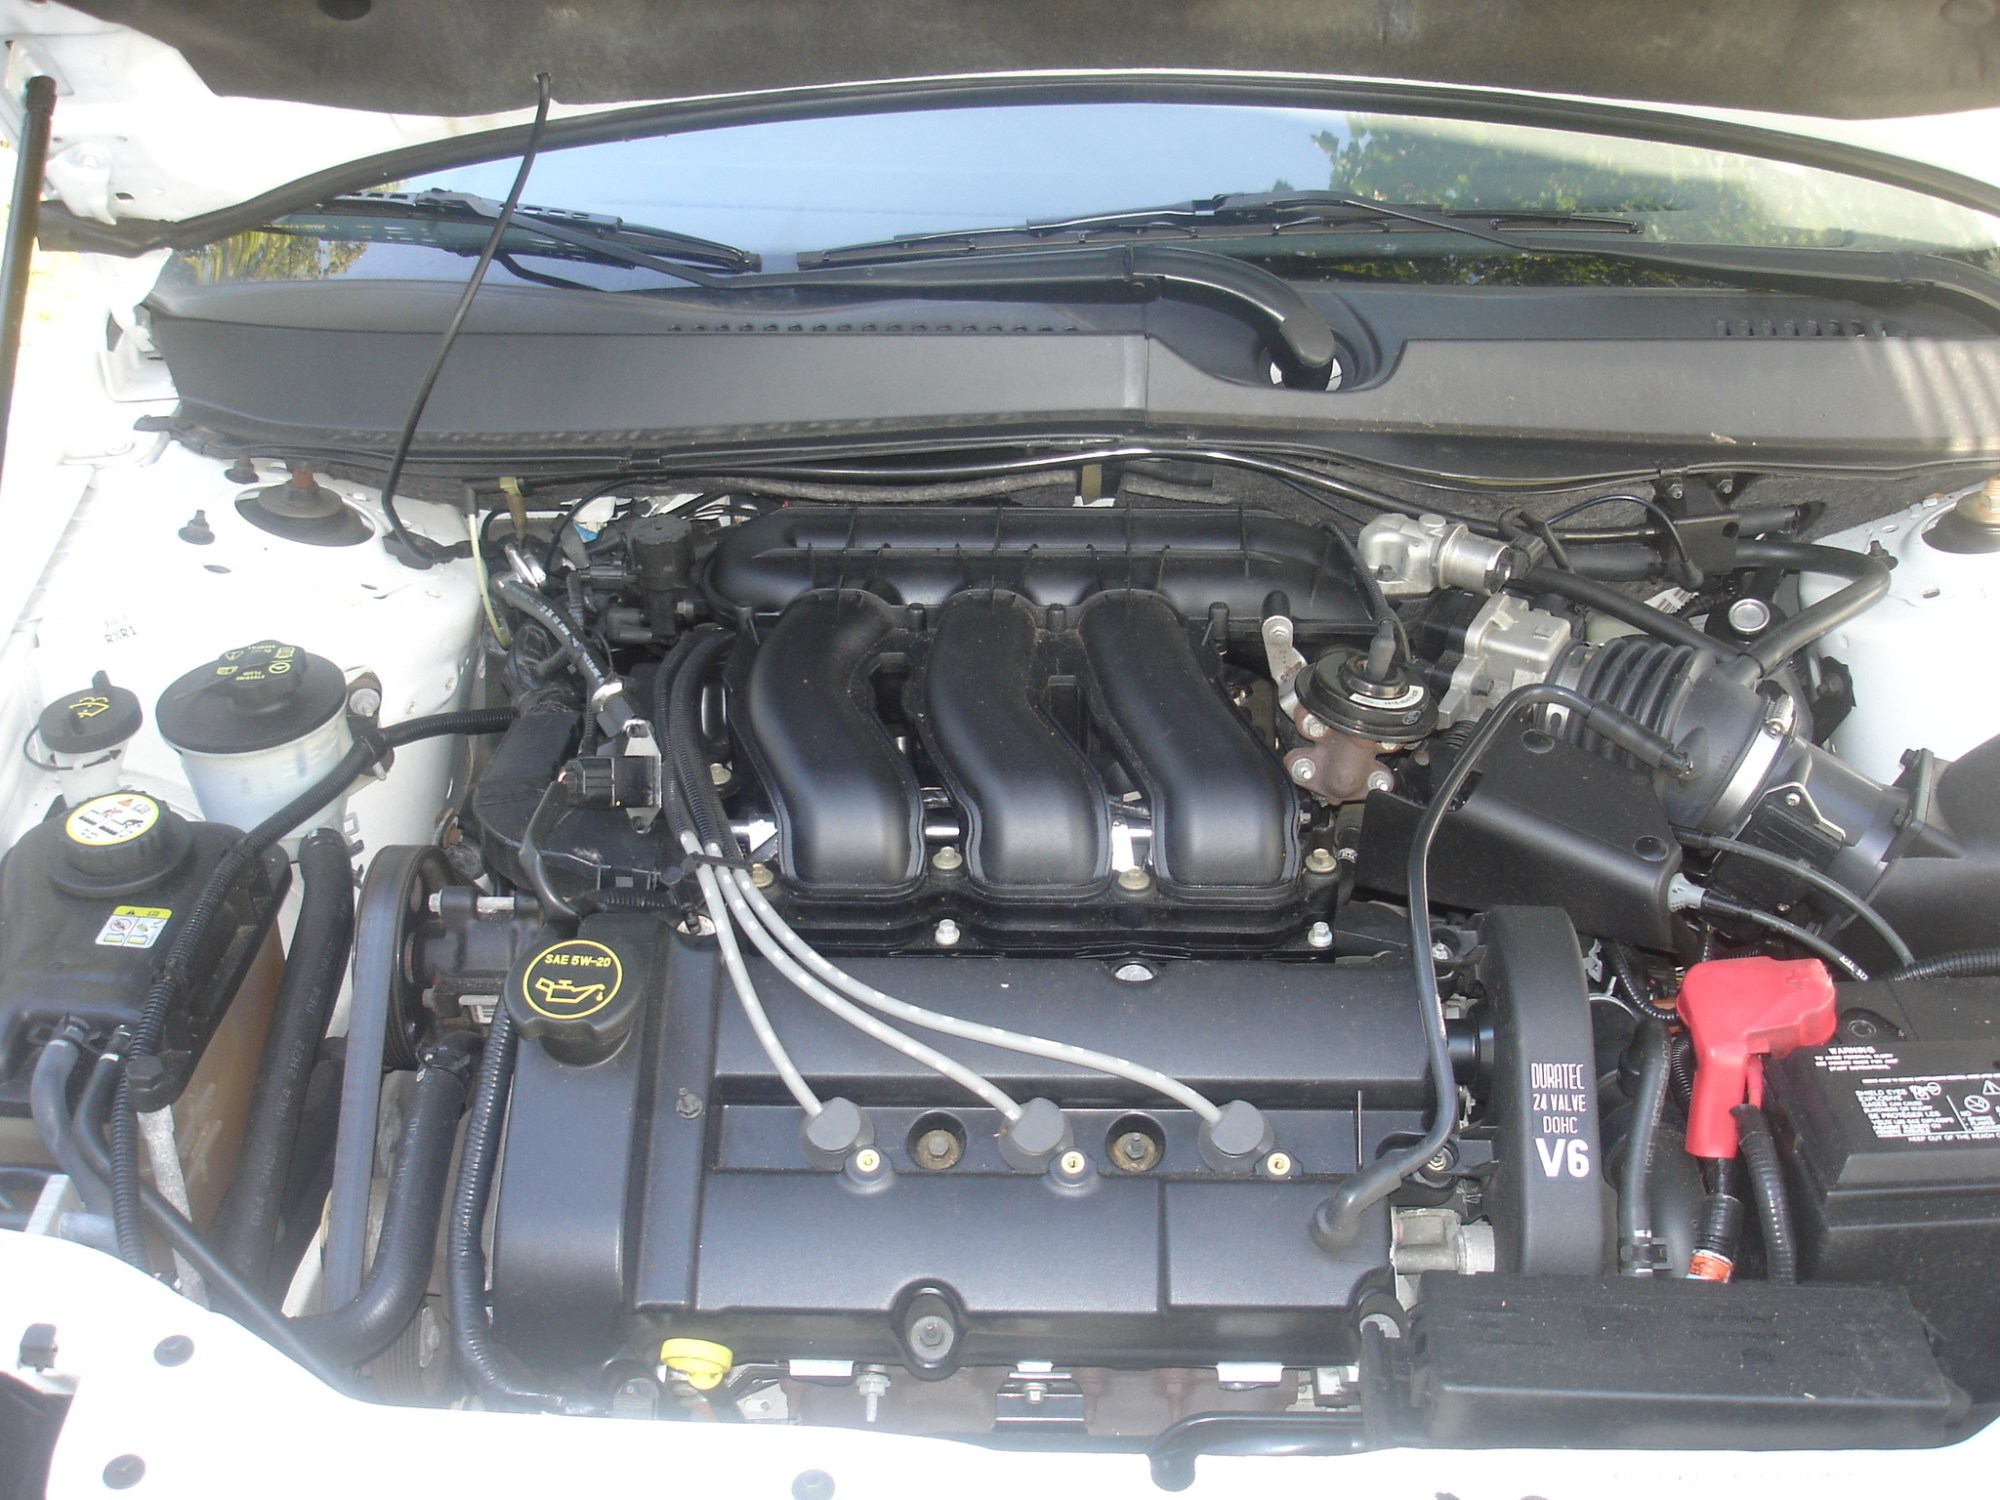 hight resolution of ford duratec v6 engine wikipedia 2001 ford taurus engine diagram intake